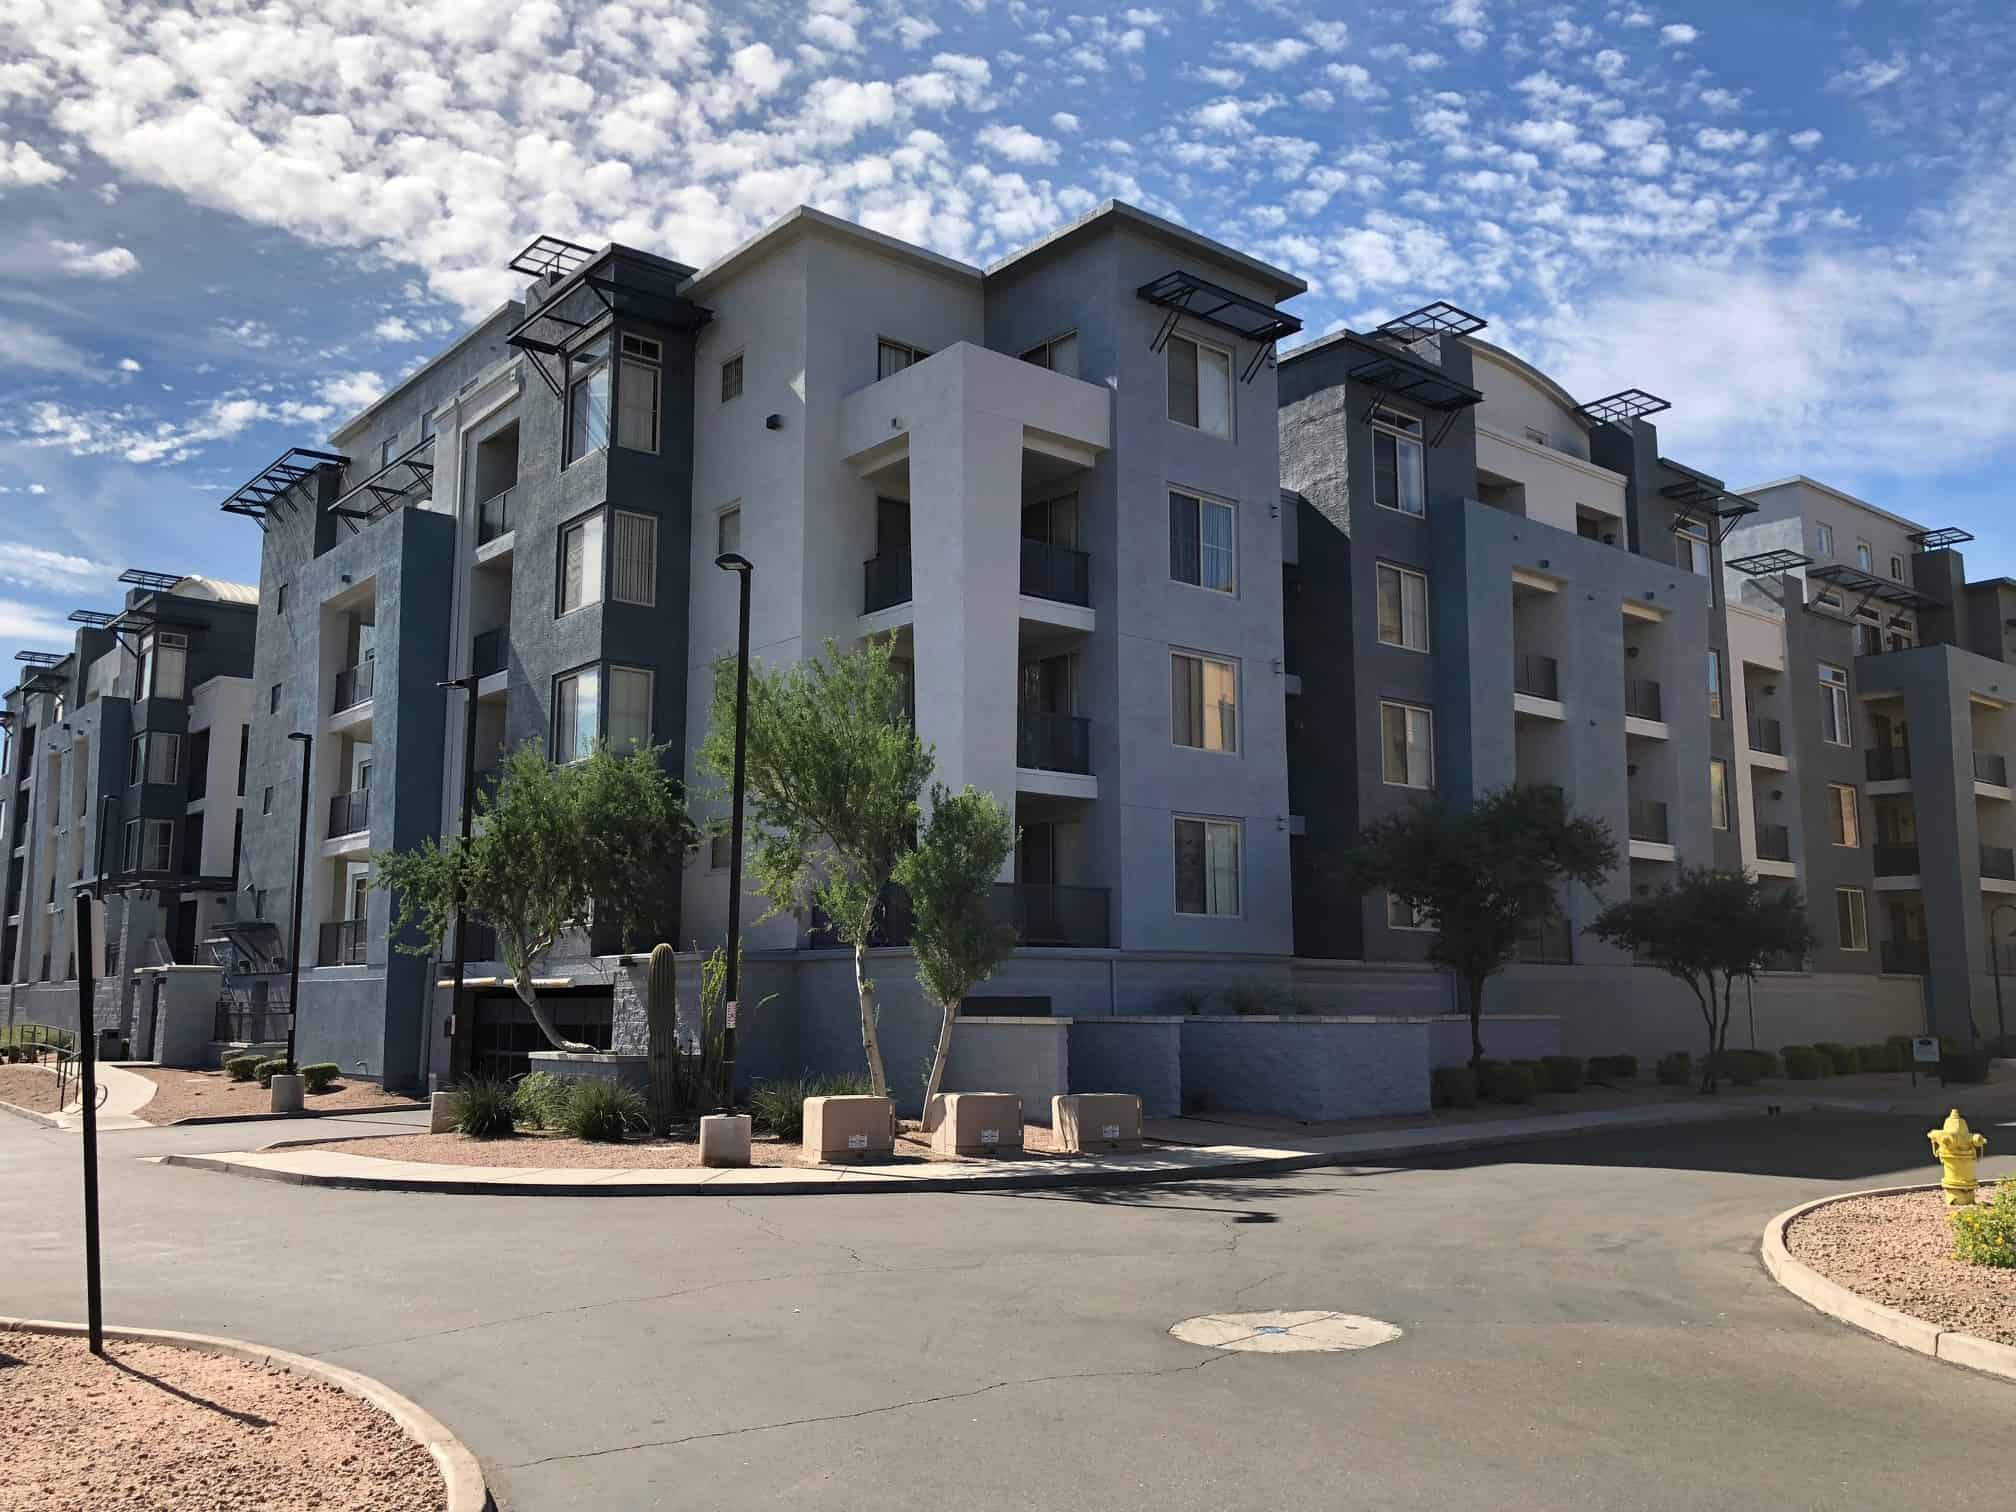 Newly painted lofts in Tempe